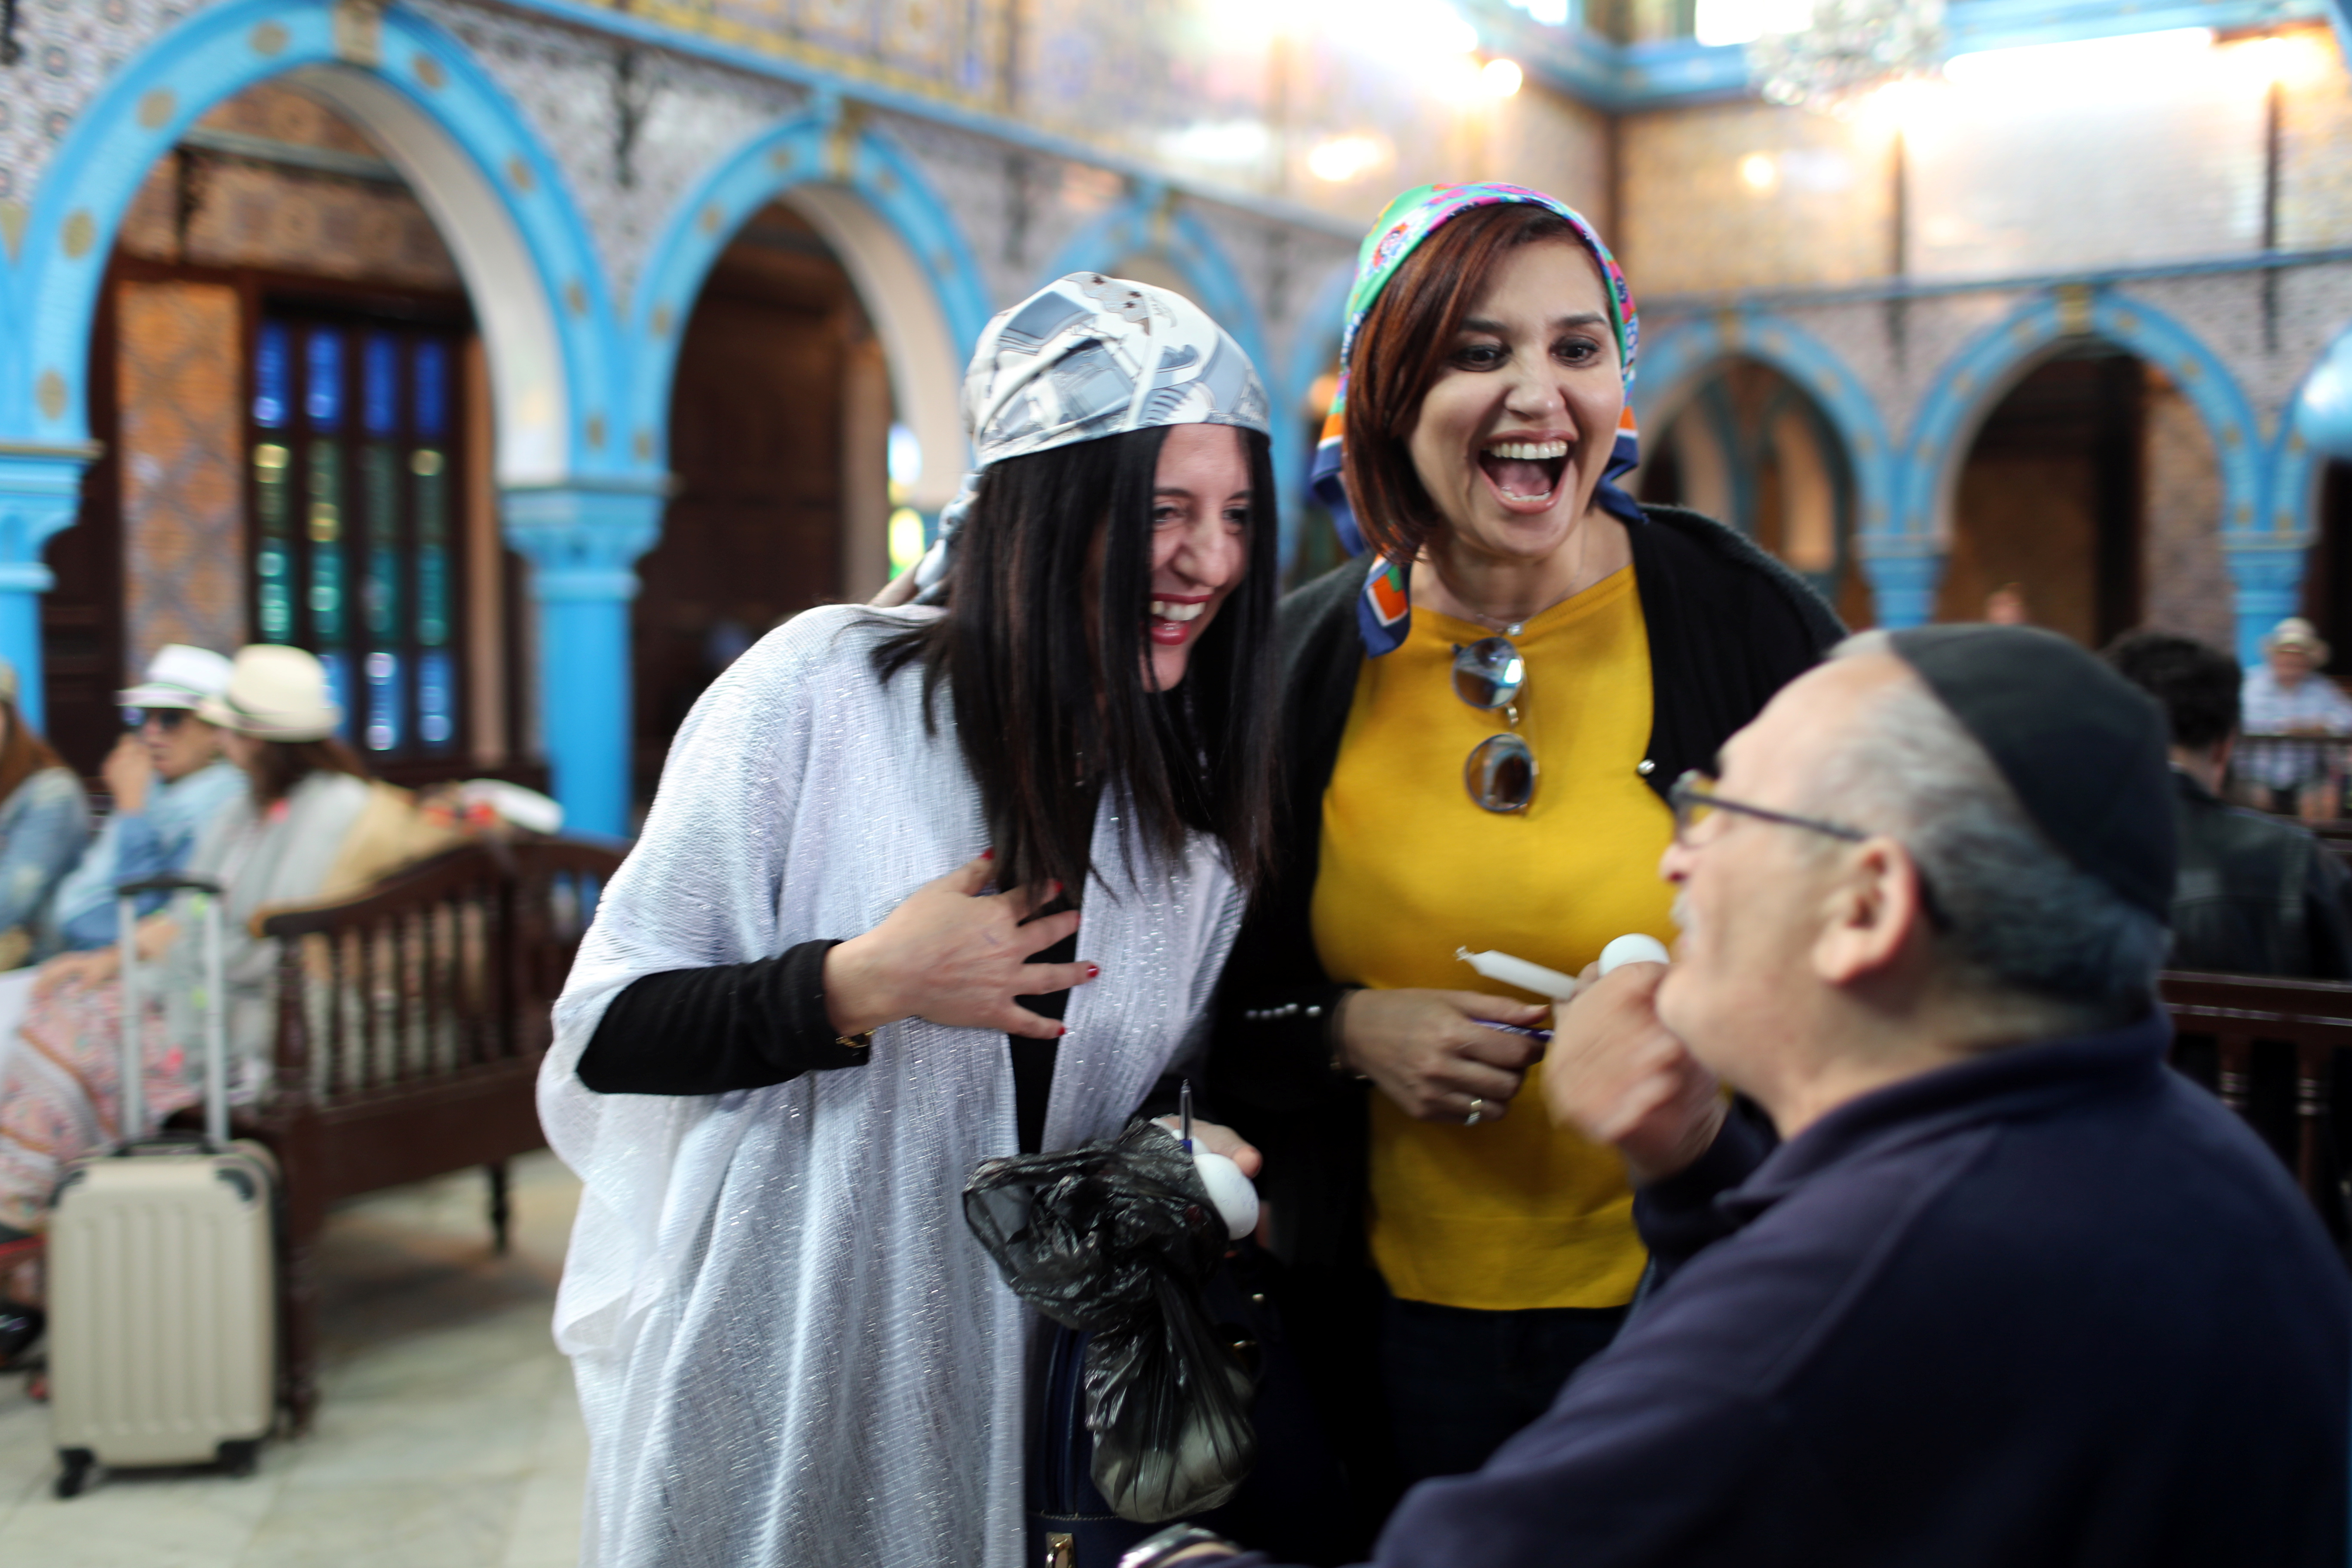 Two Tunisian Muslim women chat with a Jewish man at Ghriba, the oldest Jewish synagogue in Africa, during an annual pilgrimage in Djerba, Tunisia May 2, 2018. Picture taken May 2, 2018. REUTERS/Ahmed Jadallah